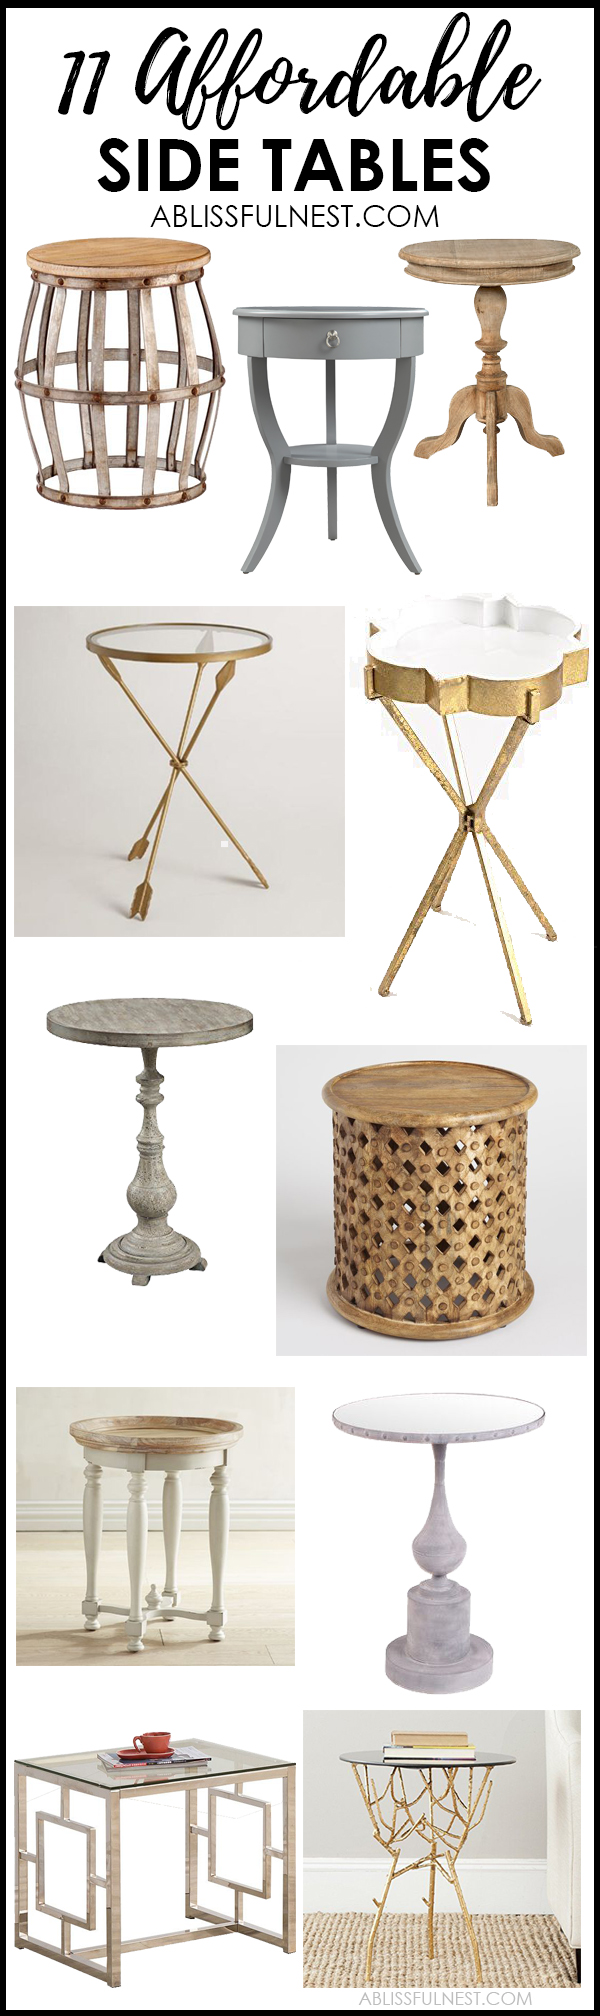 affordable side tables for decorating your home style blissful nest farmhouse accent table looking living room from more small wood dining and chairs white leather trunk round